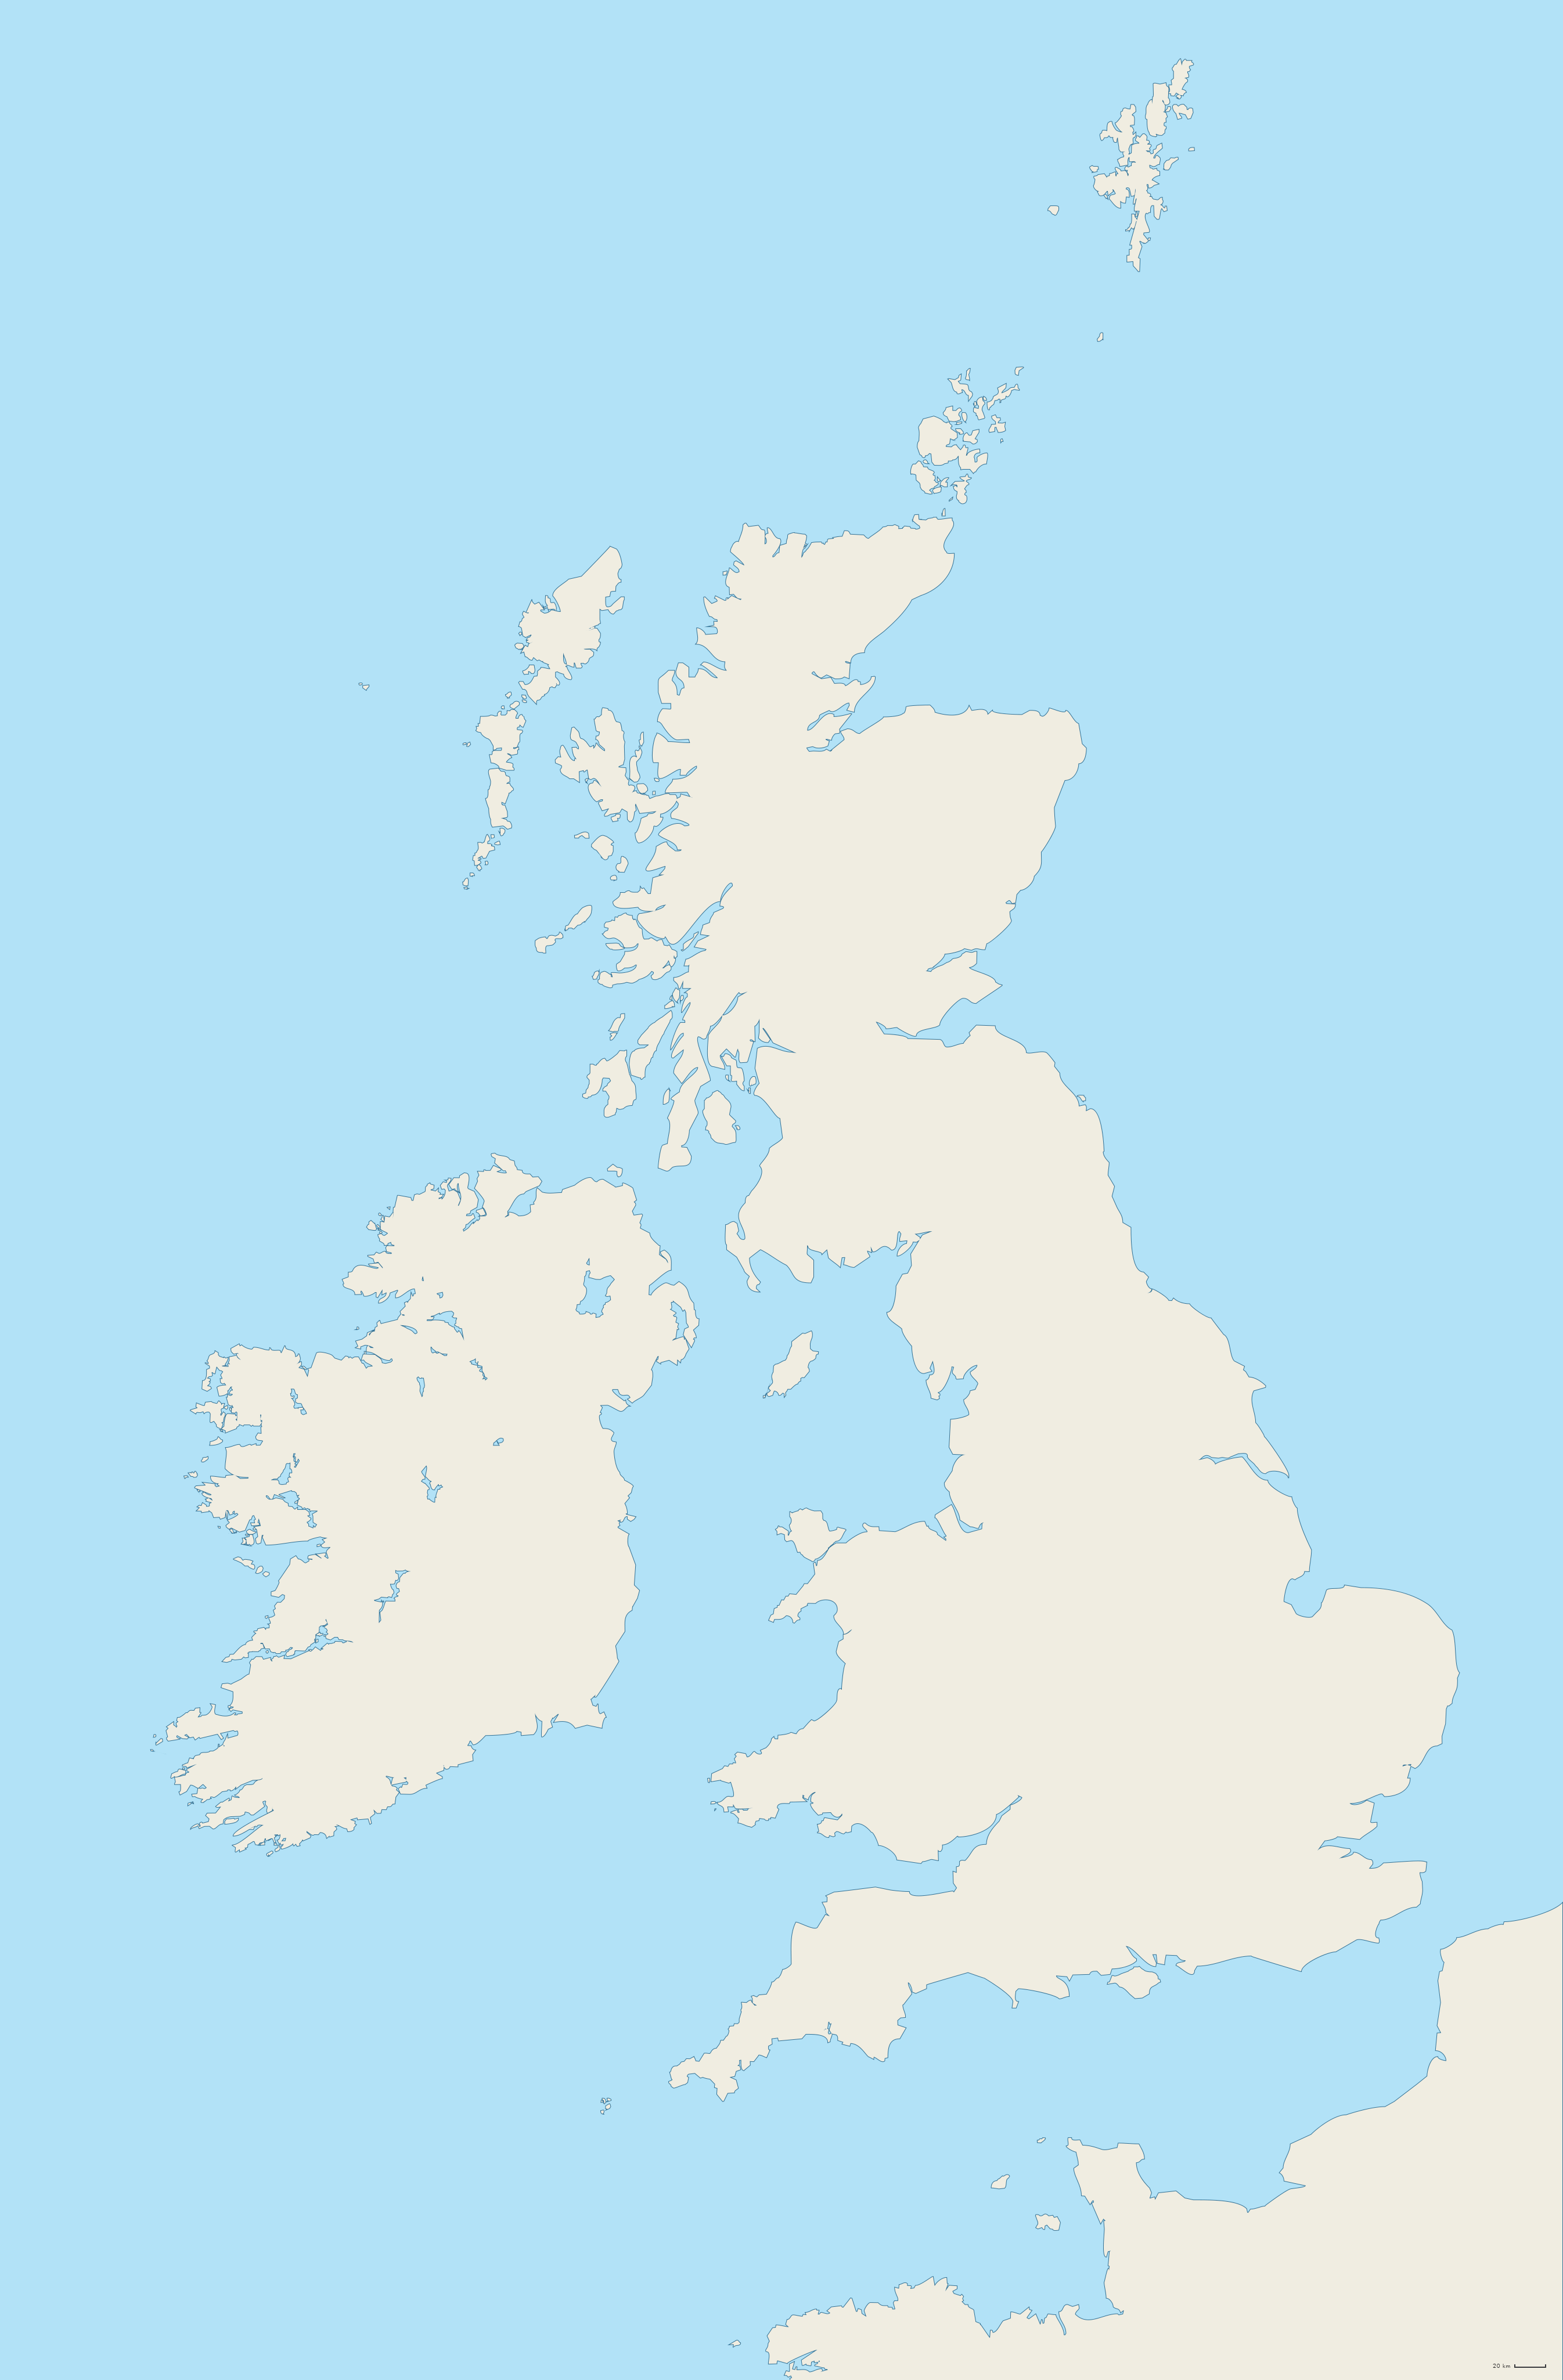 Blank Map of the British Isles Collection by ImDeadPanda